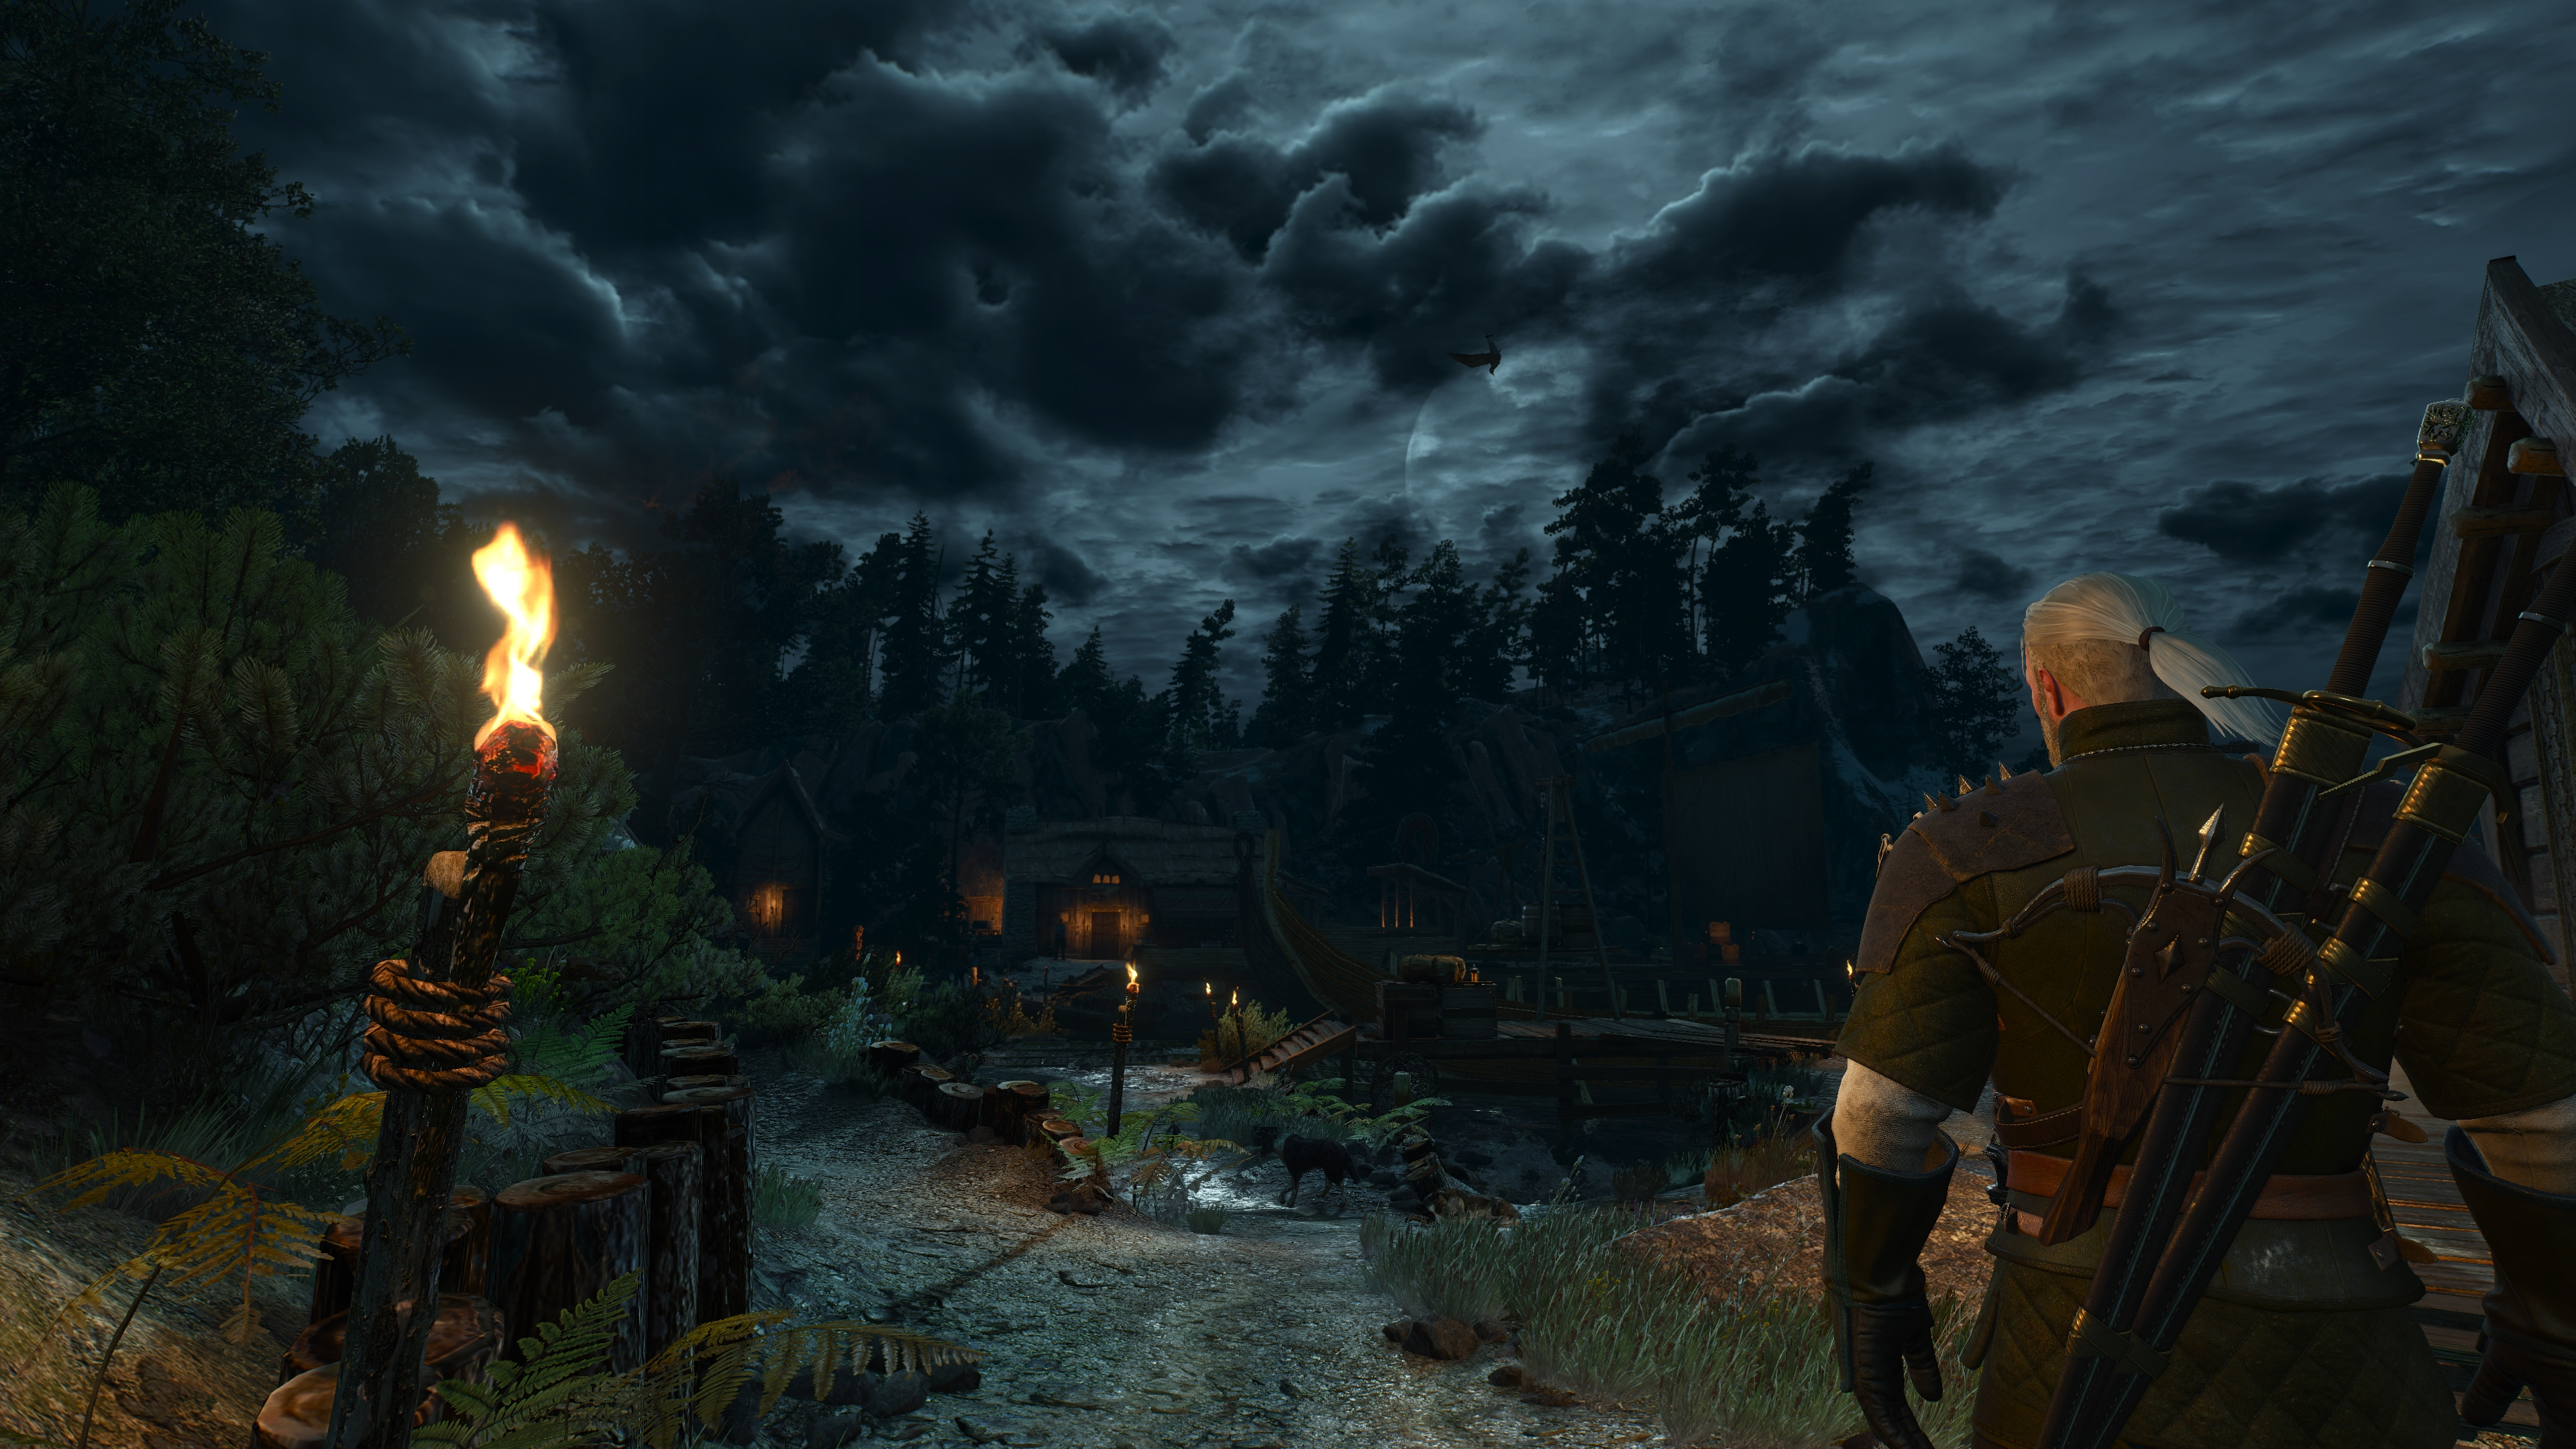 The Witcher 3 Super-Resolution 2017.12.22 - 01.27.01.92.jpg - Witcher 3: Wild Hunt, the